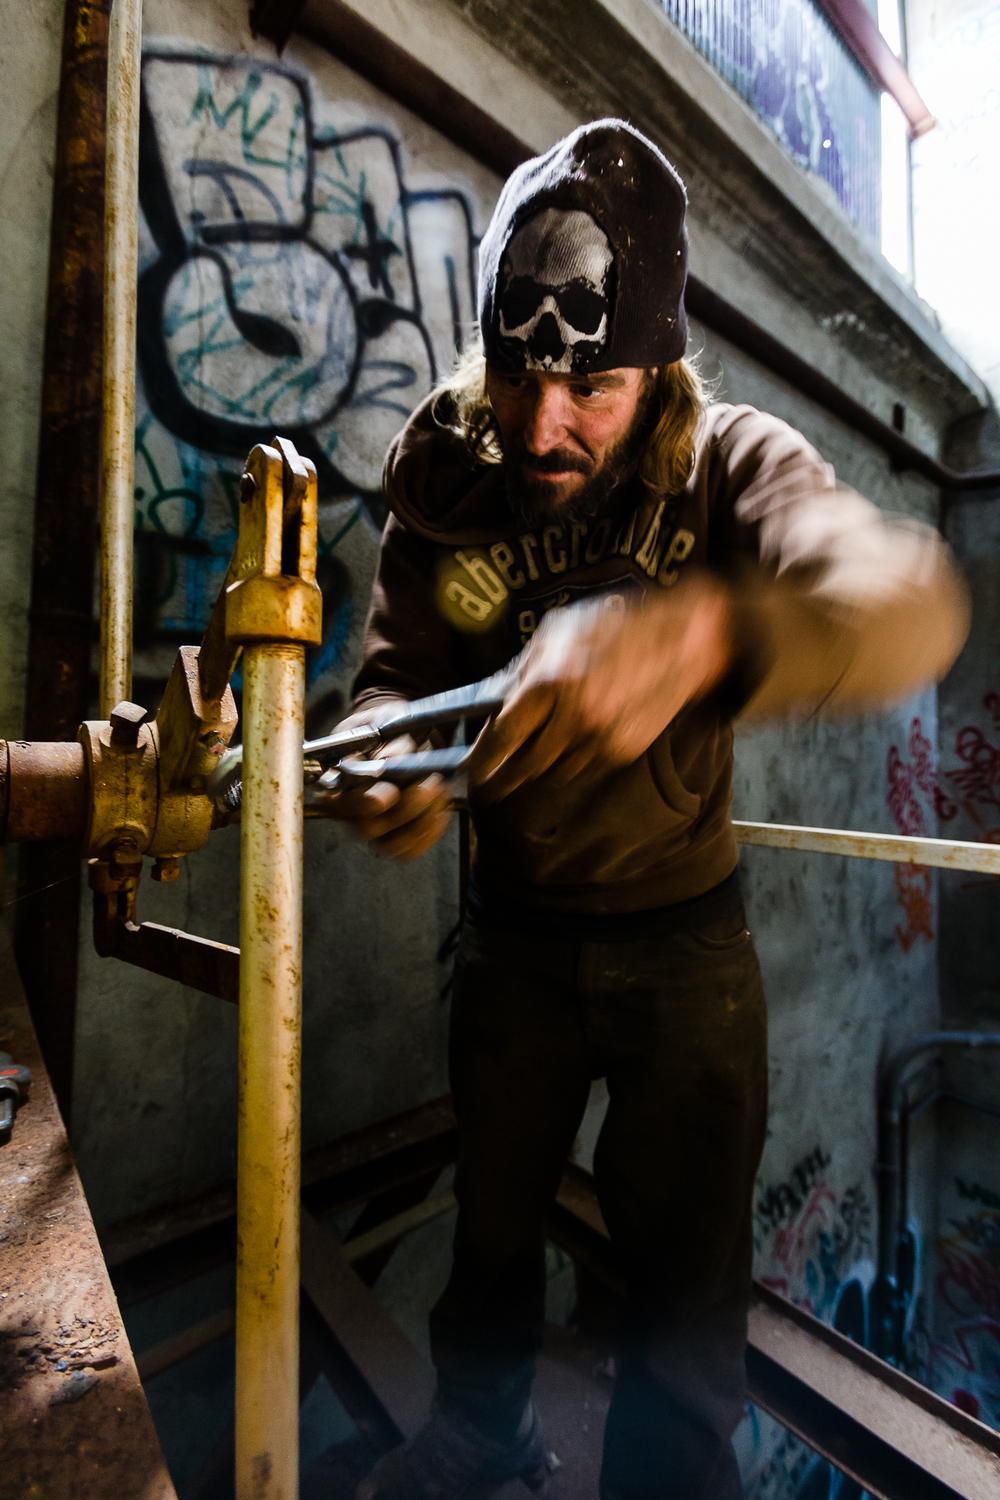 Mike, a veteran scrapper has been doing this type of work for well over 10 years. When asked, he says it beats welfare. At current market prices for various metals he can make well more than welfare provides, and he doesn't have to play by the systems rules.